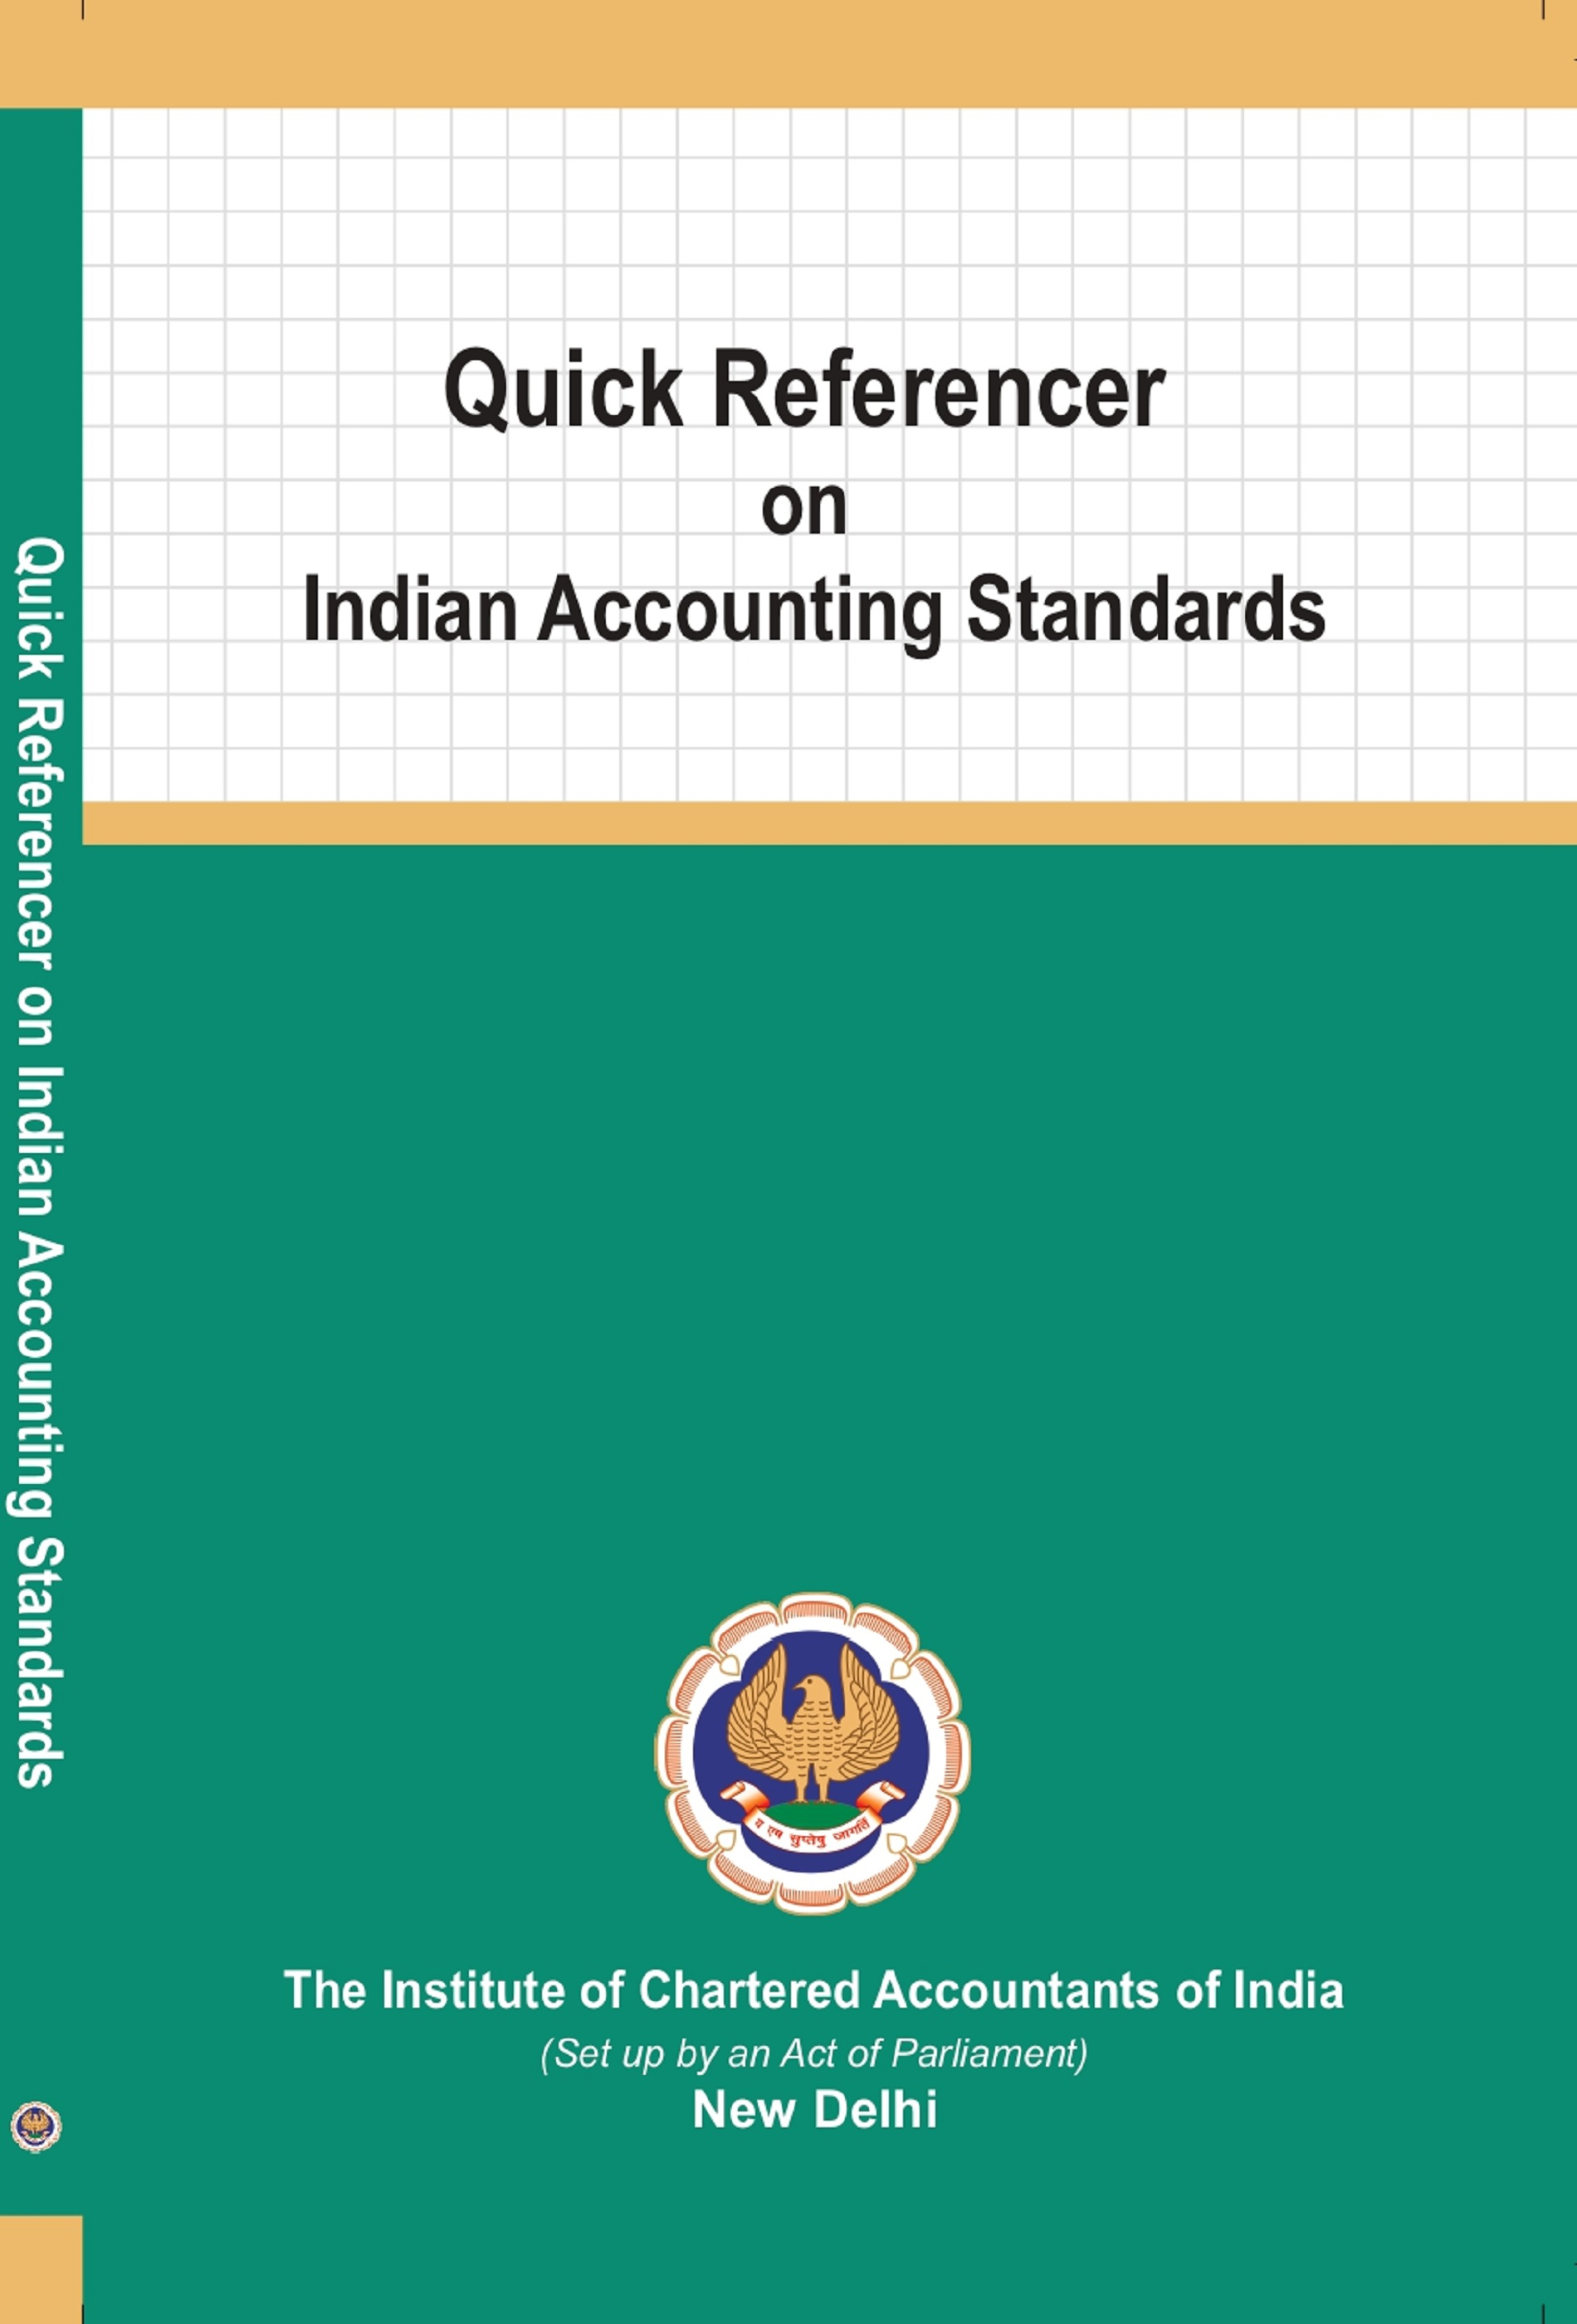 Quick Referencer on Indian Accounting Standards (November, 2019)